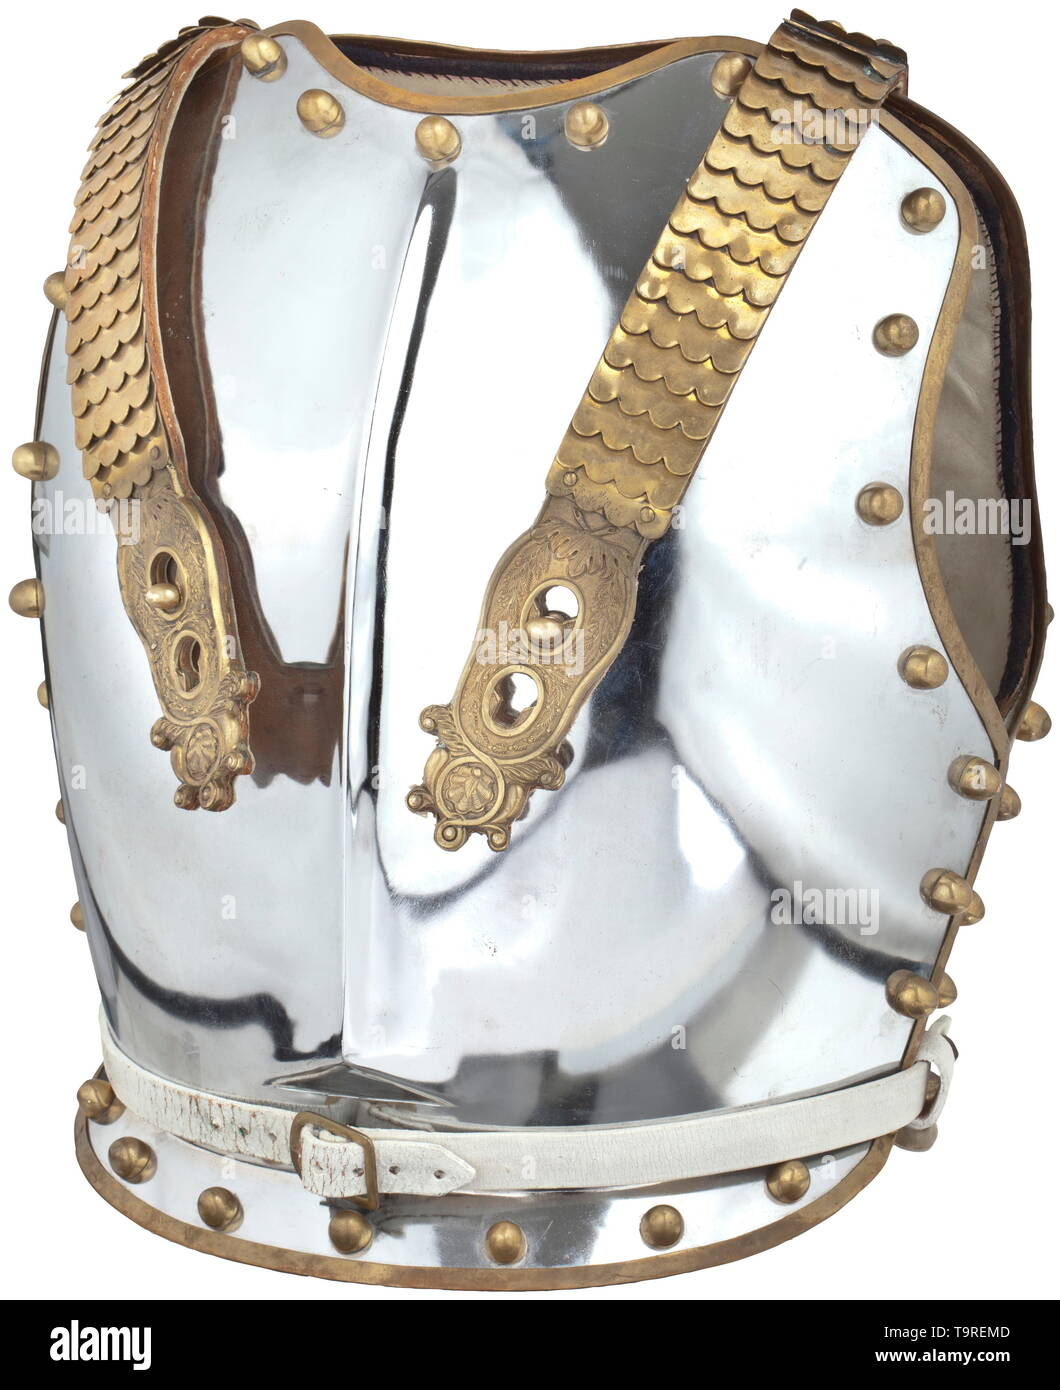 A British cuirass for enlisted men of the Household Cavalry, 20th century Breastplate and backplate made of nickel-plated iron with brass trim and continuous, sturdy semi-circular rivets. On the backplate, riveted scaled straps of brass with closures in relief design. Lined with white leather. No maker's mark or indication of size, signs of wear. Height 43 cm. historic, historical, Additional-Rights-Clearance-Info-Not-Available Stock Photo